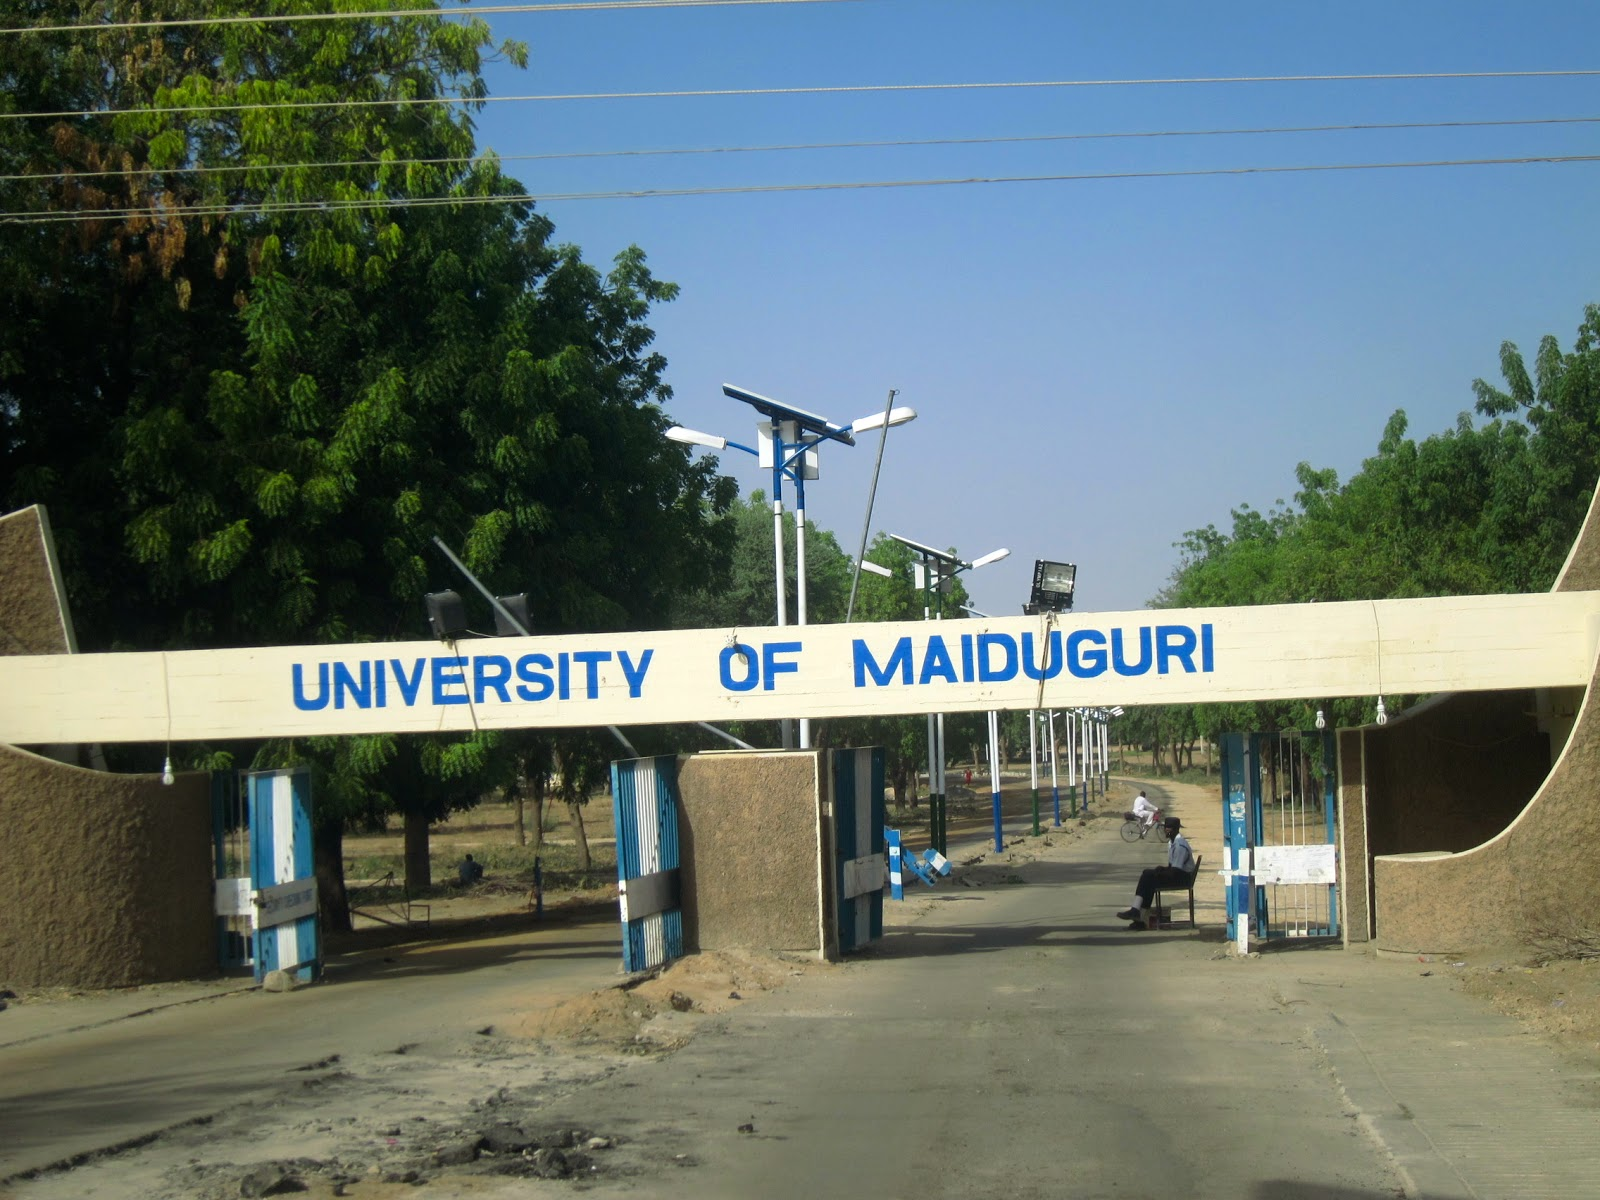 University Of Maiduguri Circular (2014)